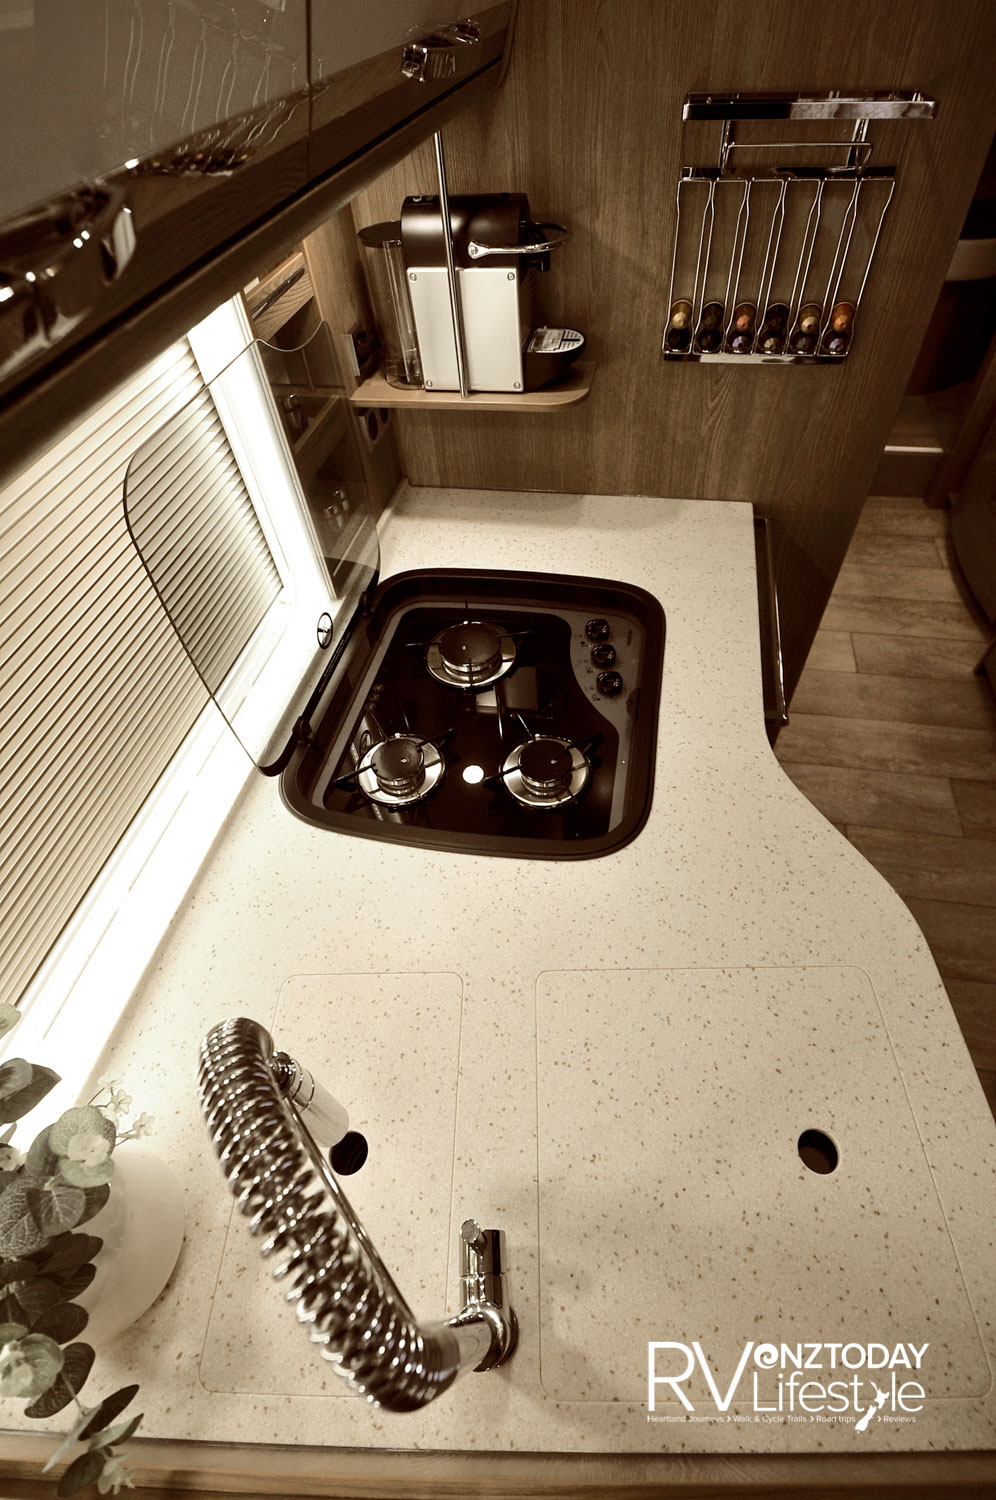 Kitchen bench boasts two sinks, with covers, three-burner gas hob, with glass lid for bench space. Note the fitted coffee machine on the shelf